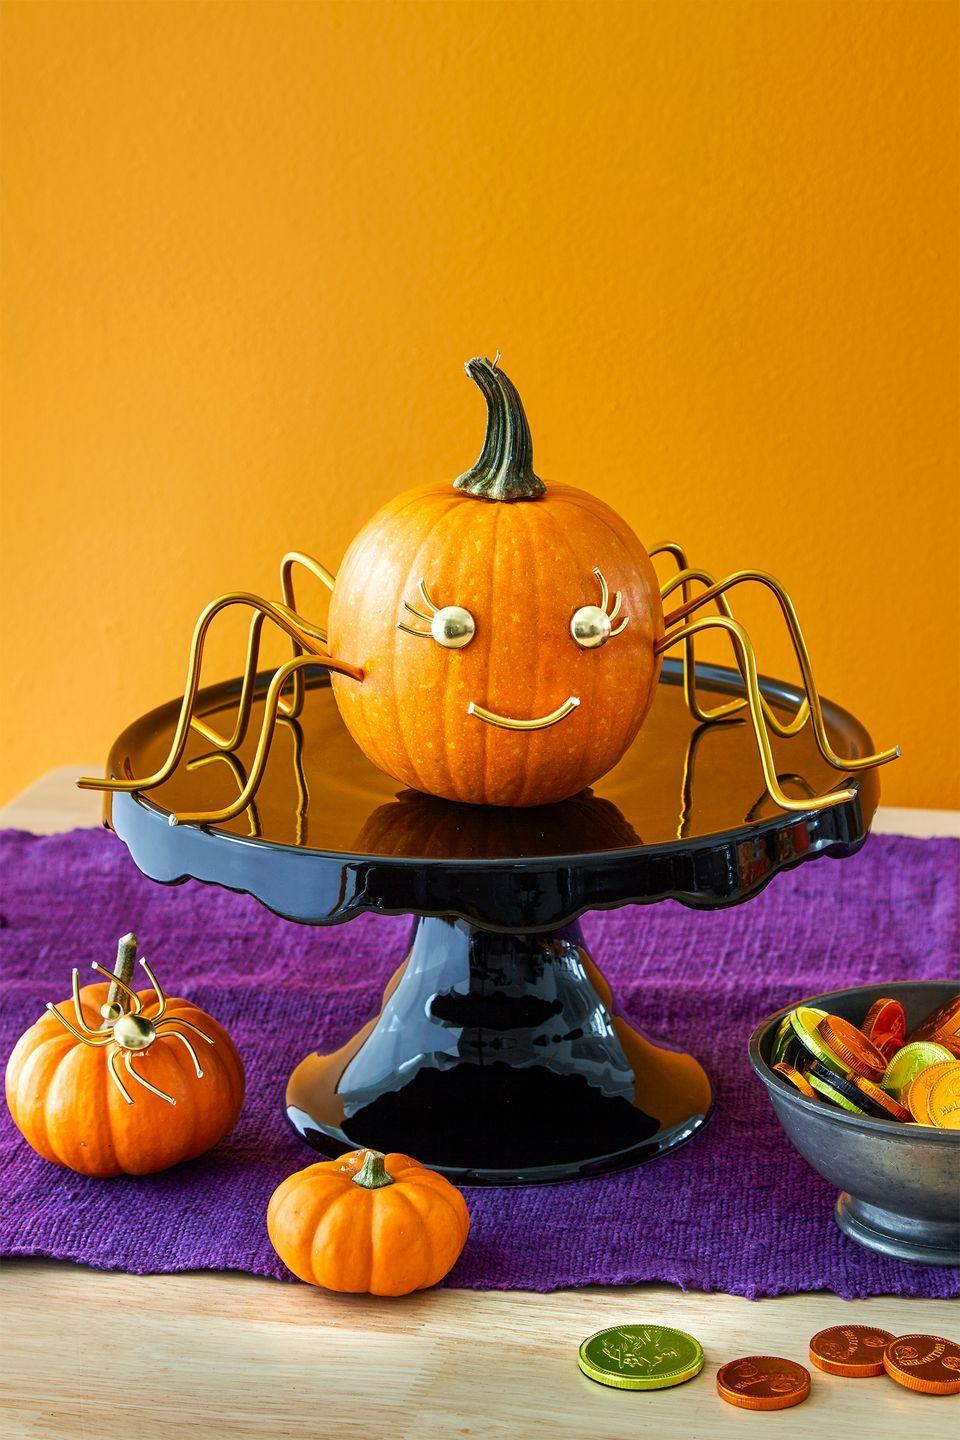 """<p>We know you're proud of your pumpkin crafting skills, which means it only makes sense to use a pedestal to show off your favorite creation for Halloween.</p><p><a class=""""link rapid-noclick-resp"""" href=""""https://www.amazon.com/wedding-adjustable-fondant-accessory-bakeware/dp/B07L815B9N/ref=asc_df_B07L815B9N/?tag=syn-yahoo-20&ascsubtag=%5Bartid%7C10055.g.33437890%5Bsrc%7Cyahoo-us"""" rel=""""nofollow noopener"""" target=""""_blank"""" data-ylk=""""slk:SHOP PEDESTAL"""">SHOP PEDESTAL</a></p>"""